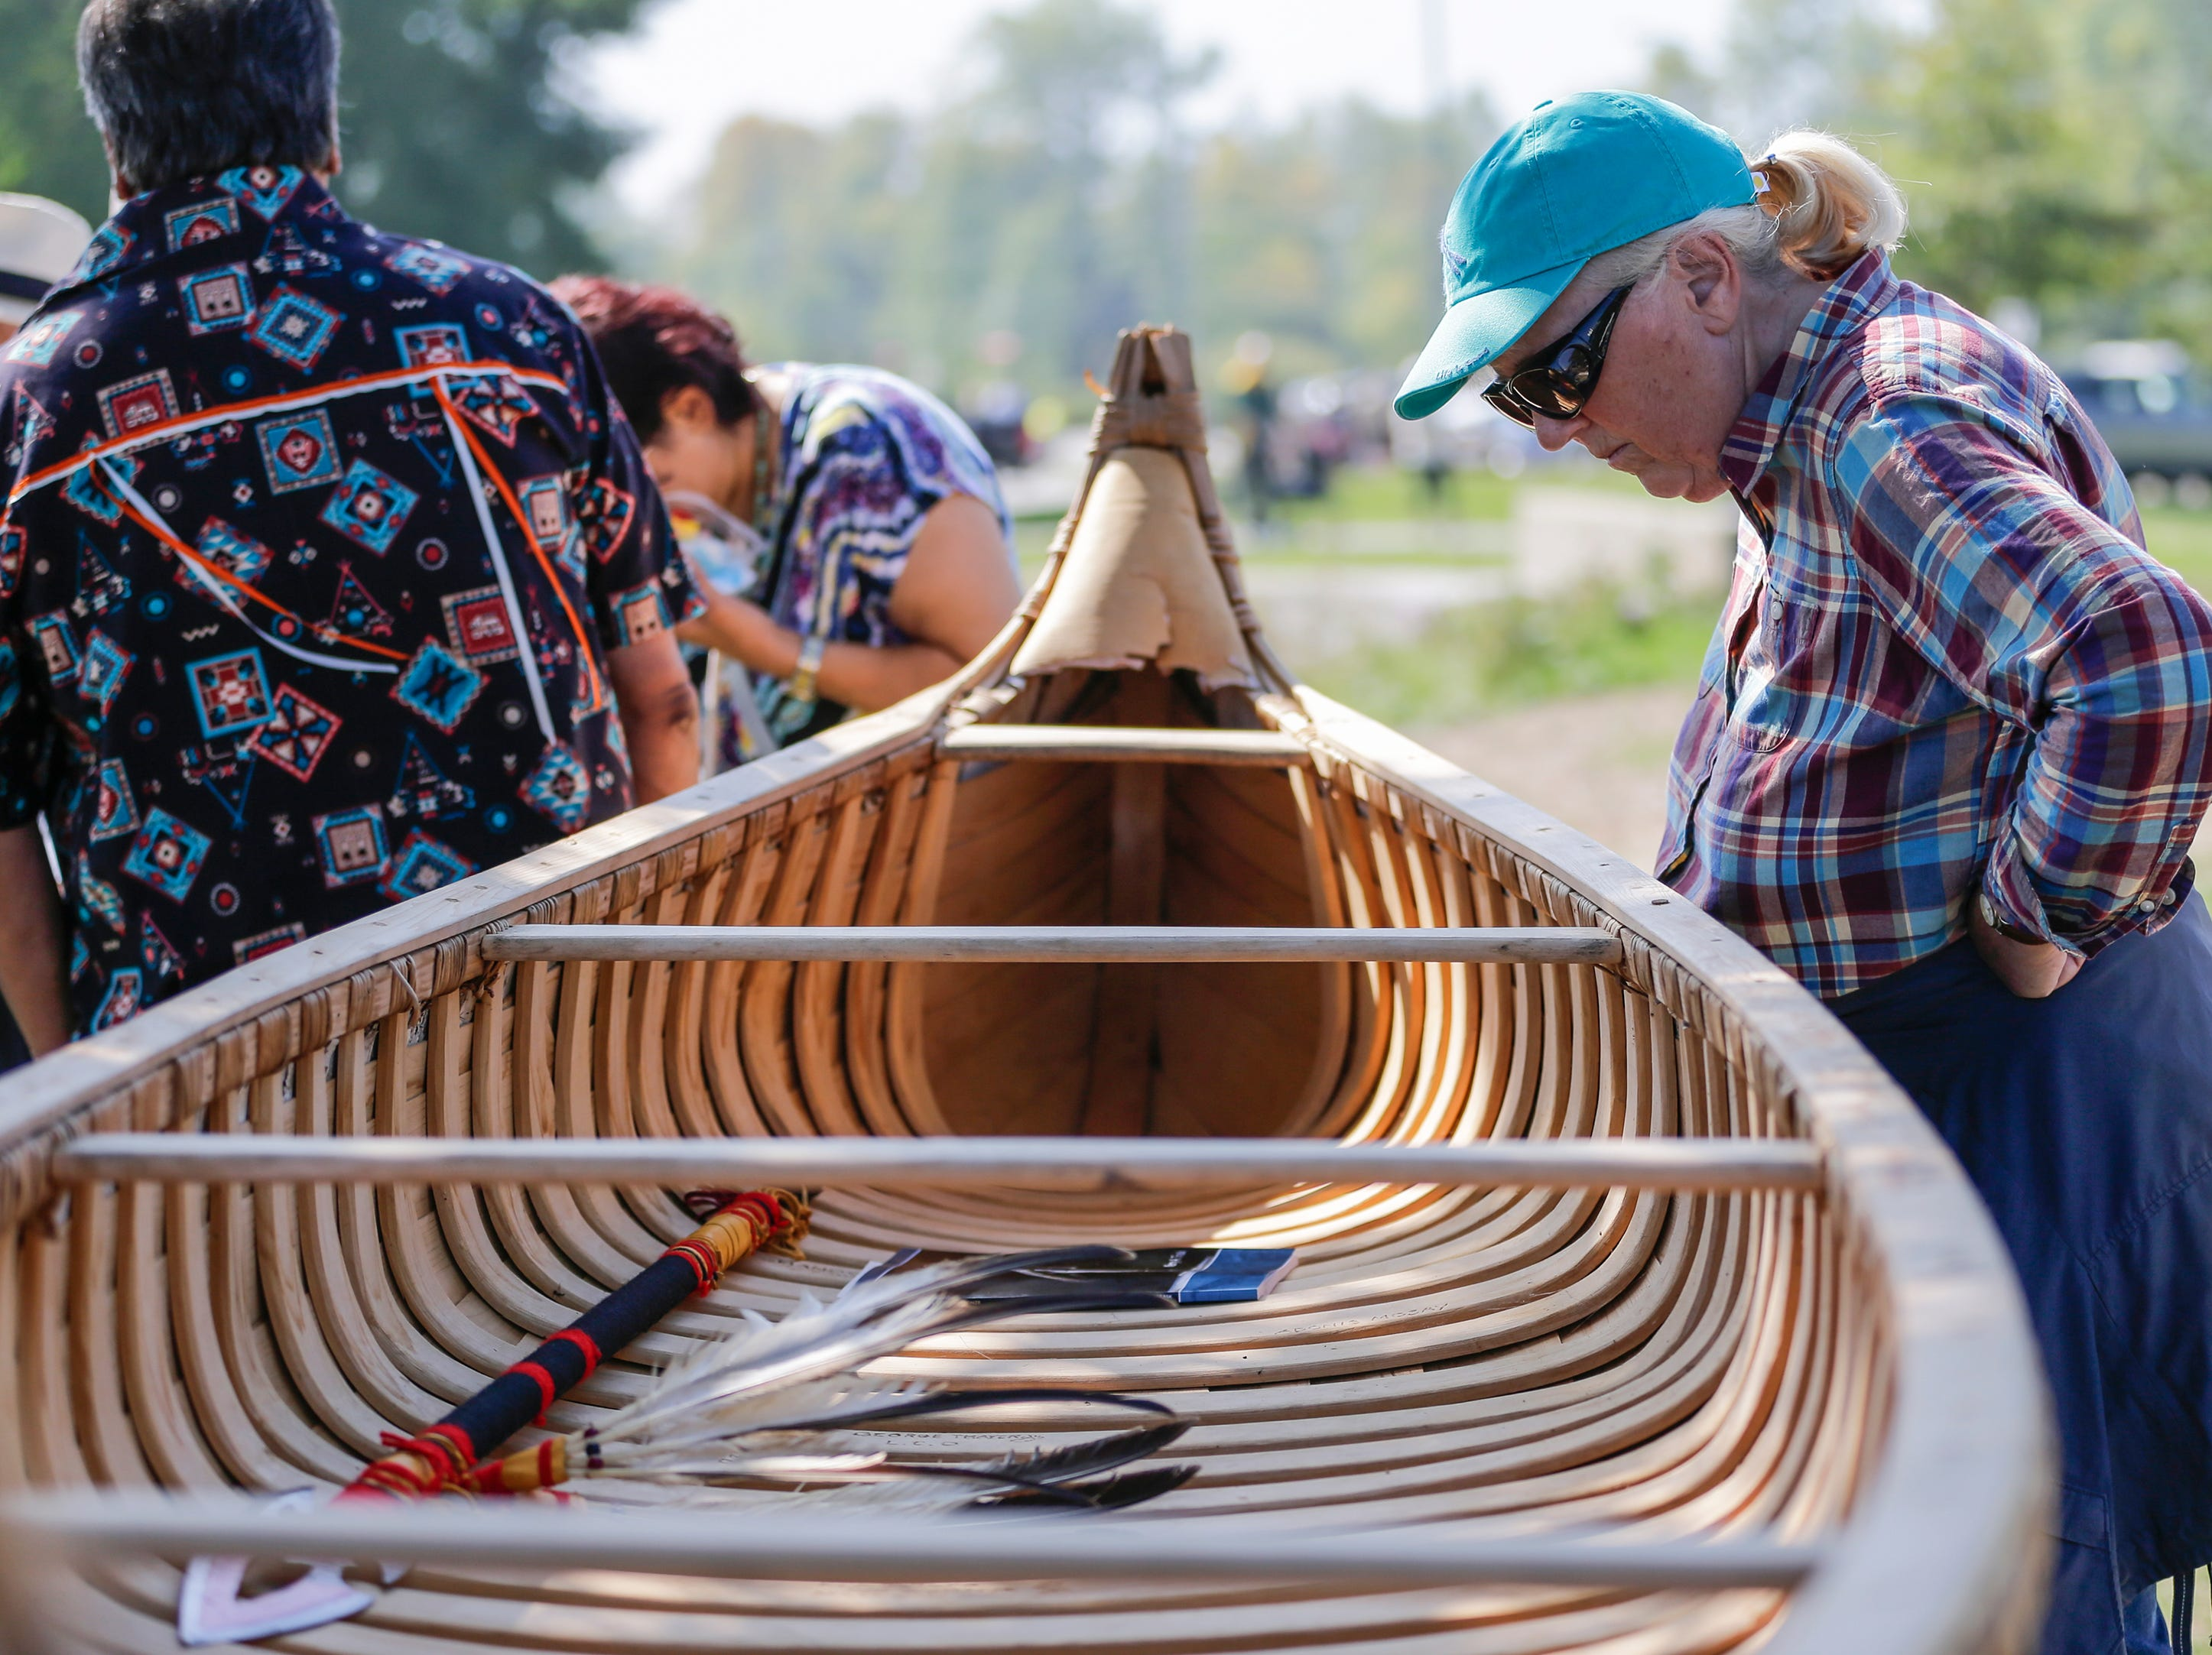 Janis King of Manitowoc takes a closer look at the birch bark canoe on display during the Spirit of the Rivers monument dedication Sunday, Sept. 16, 2018, in Two Rivers, Wis.